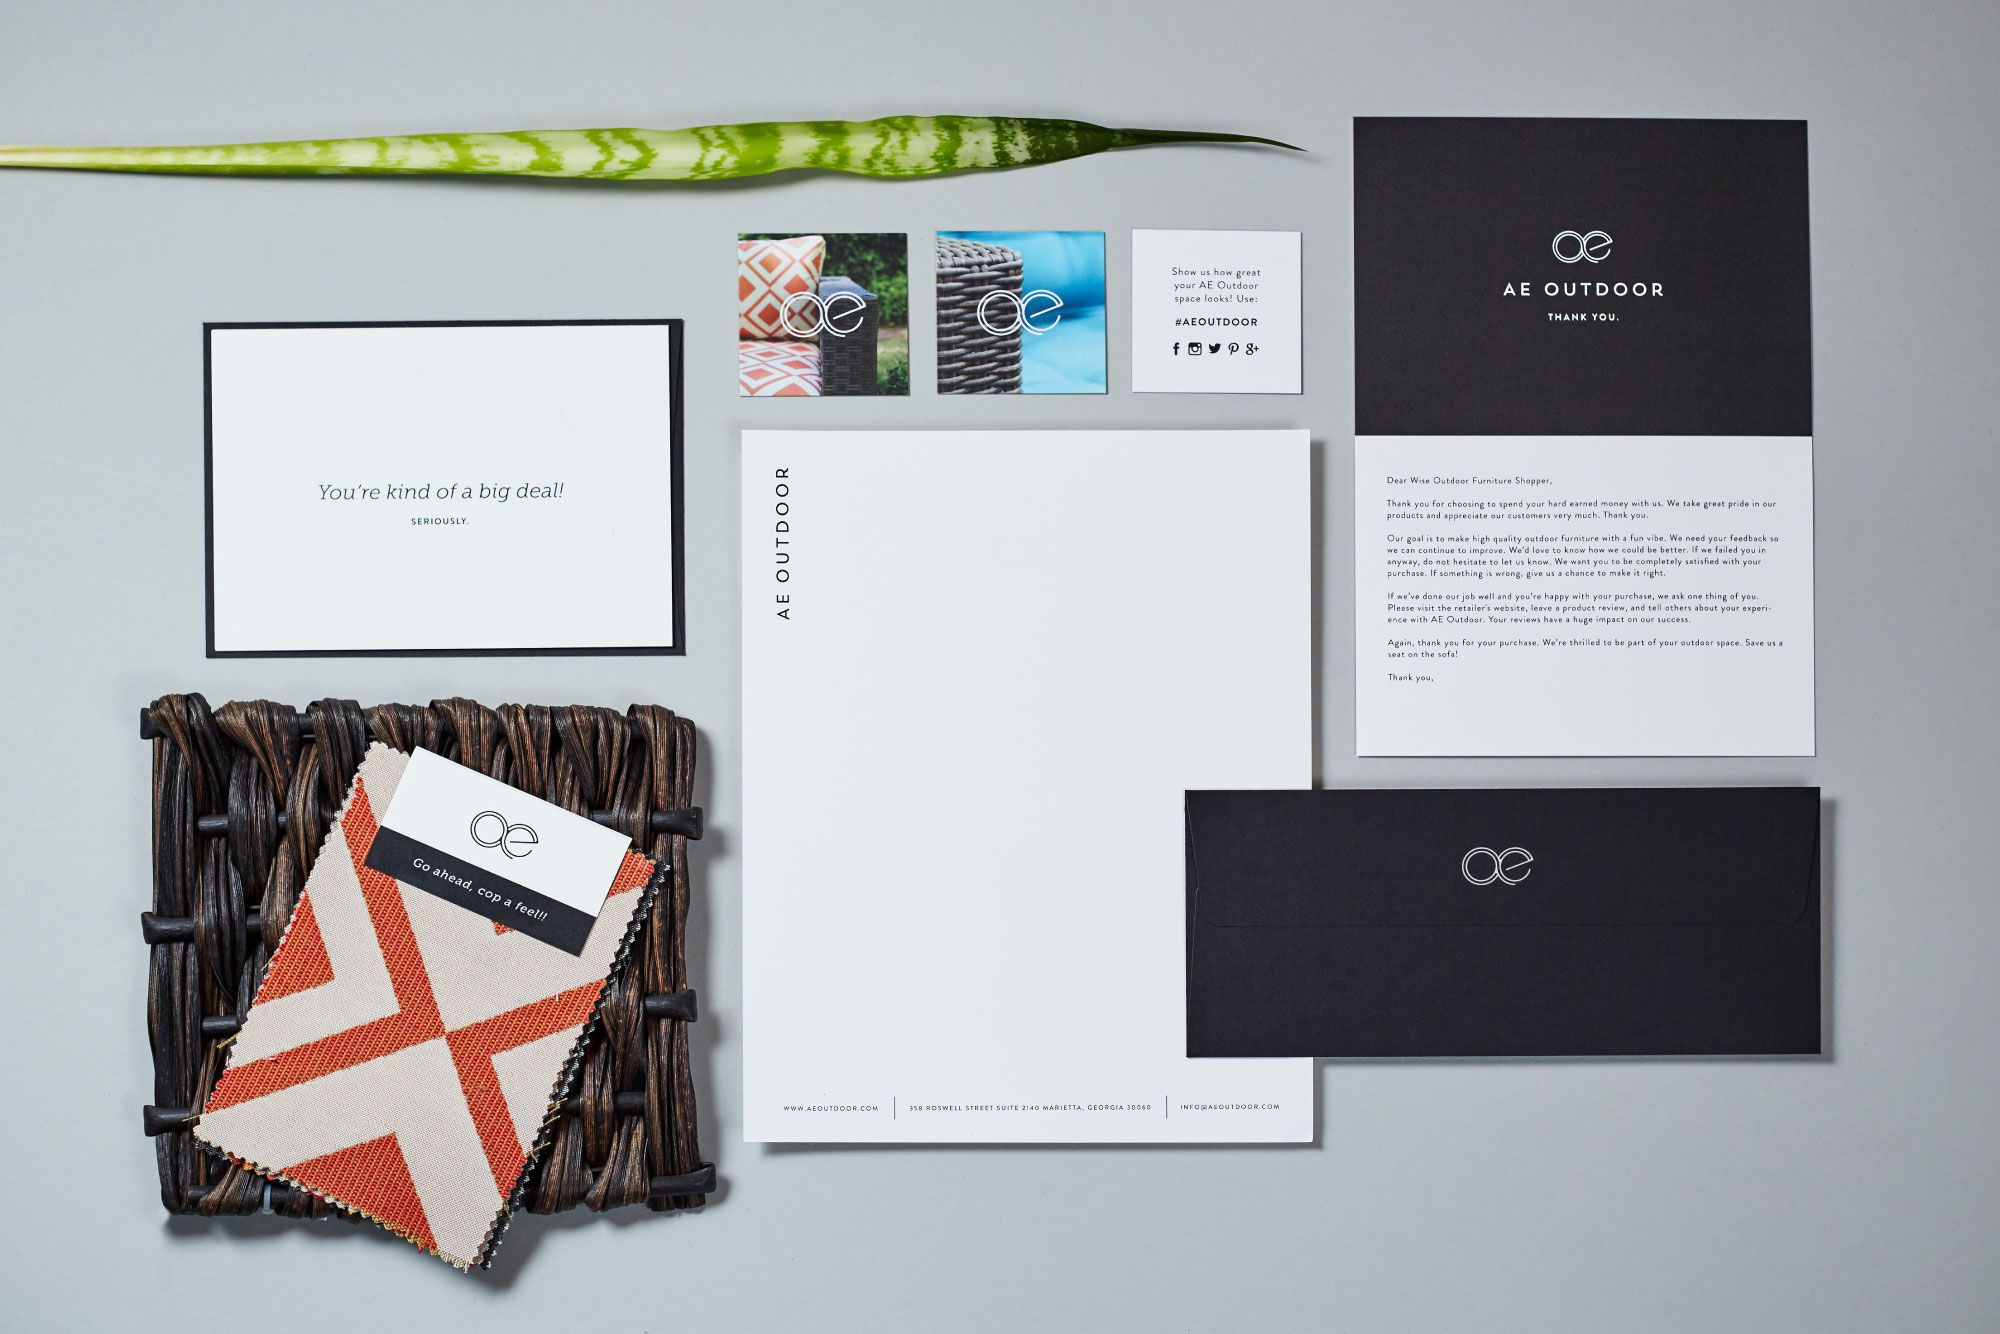 Ae Outdoor Furniture Company Branding Identity Design Brand